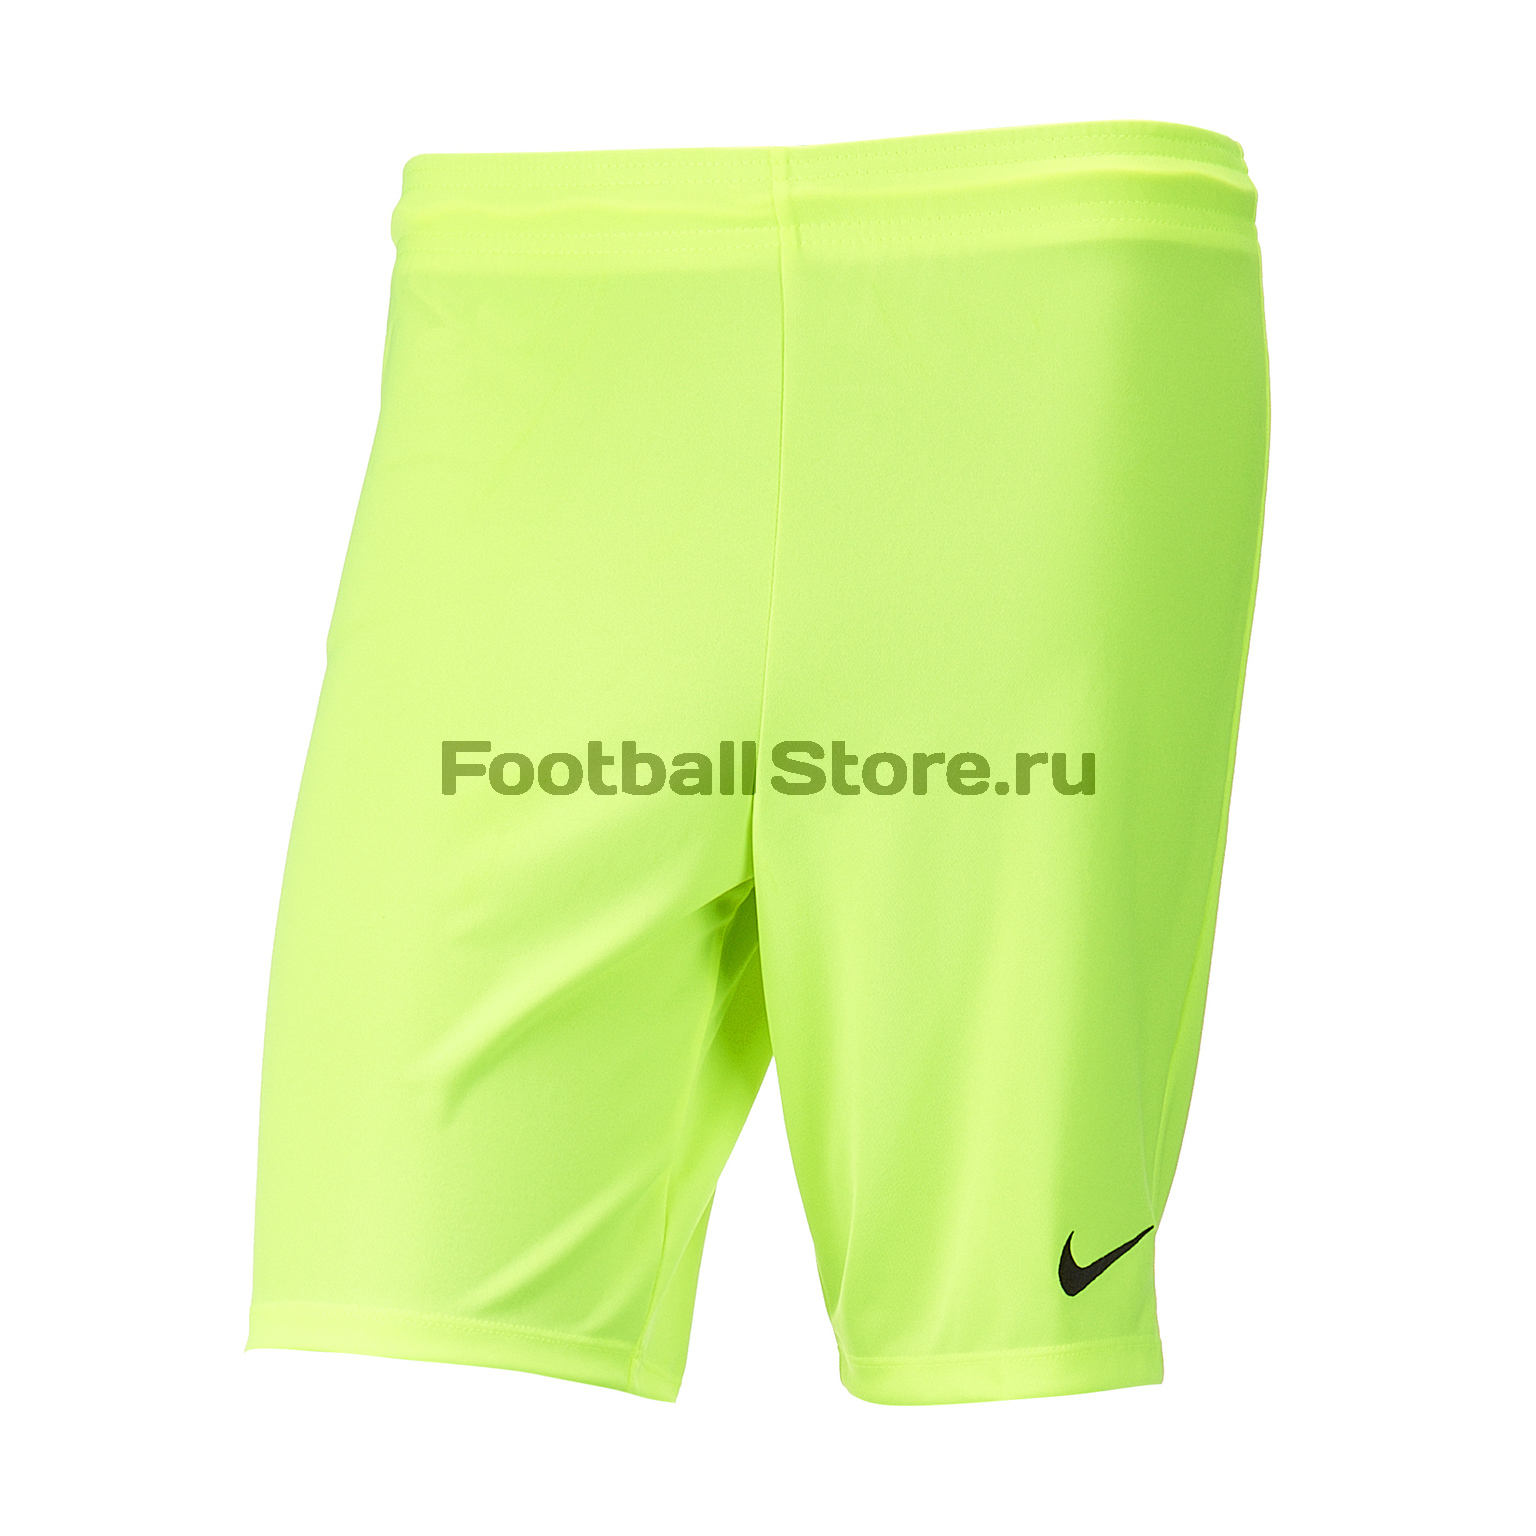 Шорты Nike Park II KNIT Short NB 725887-702